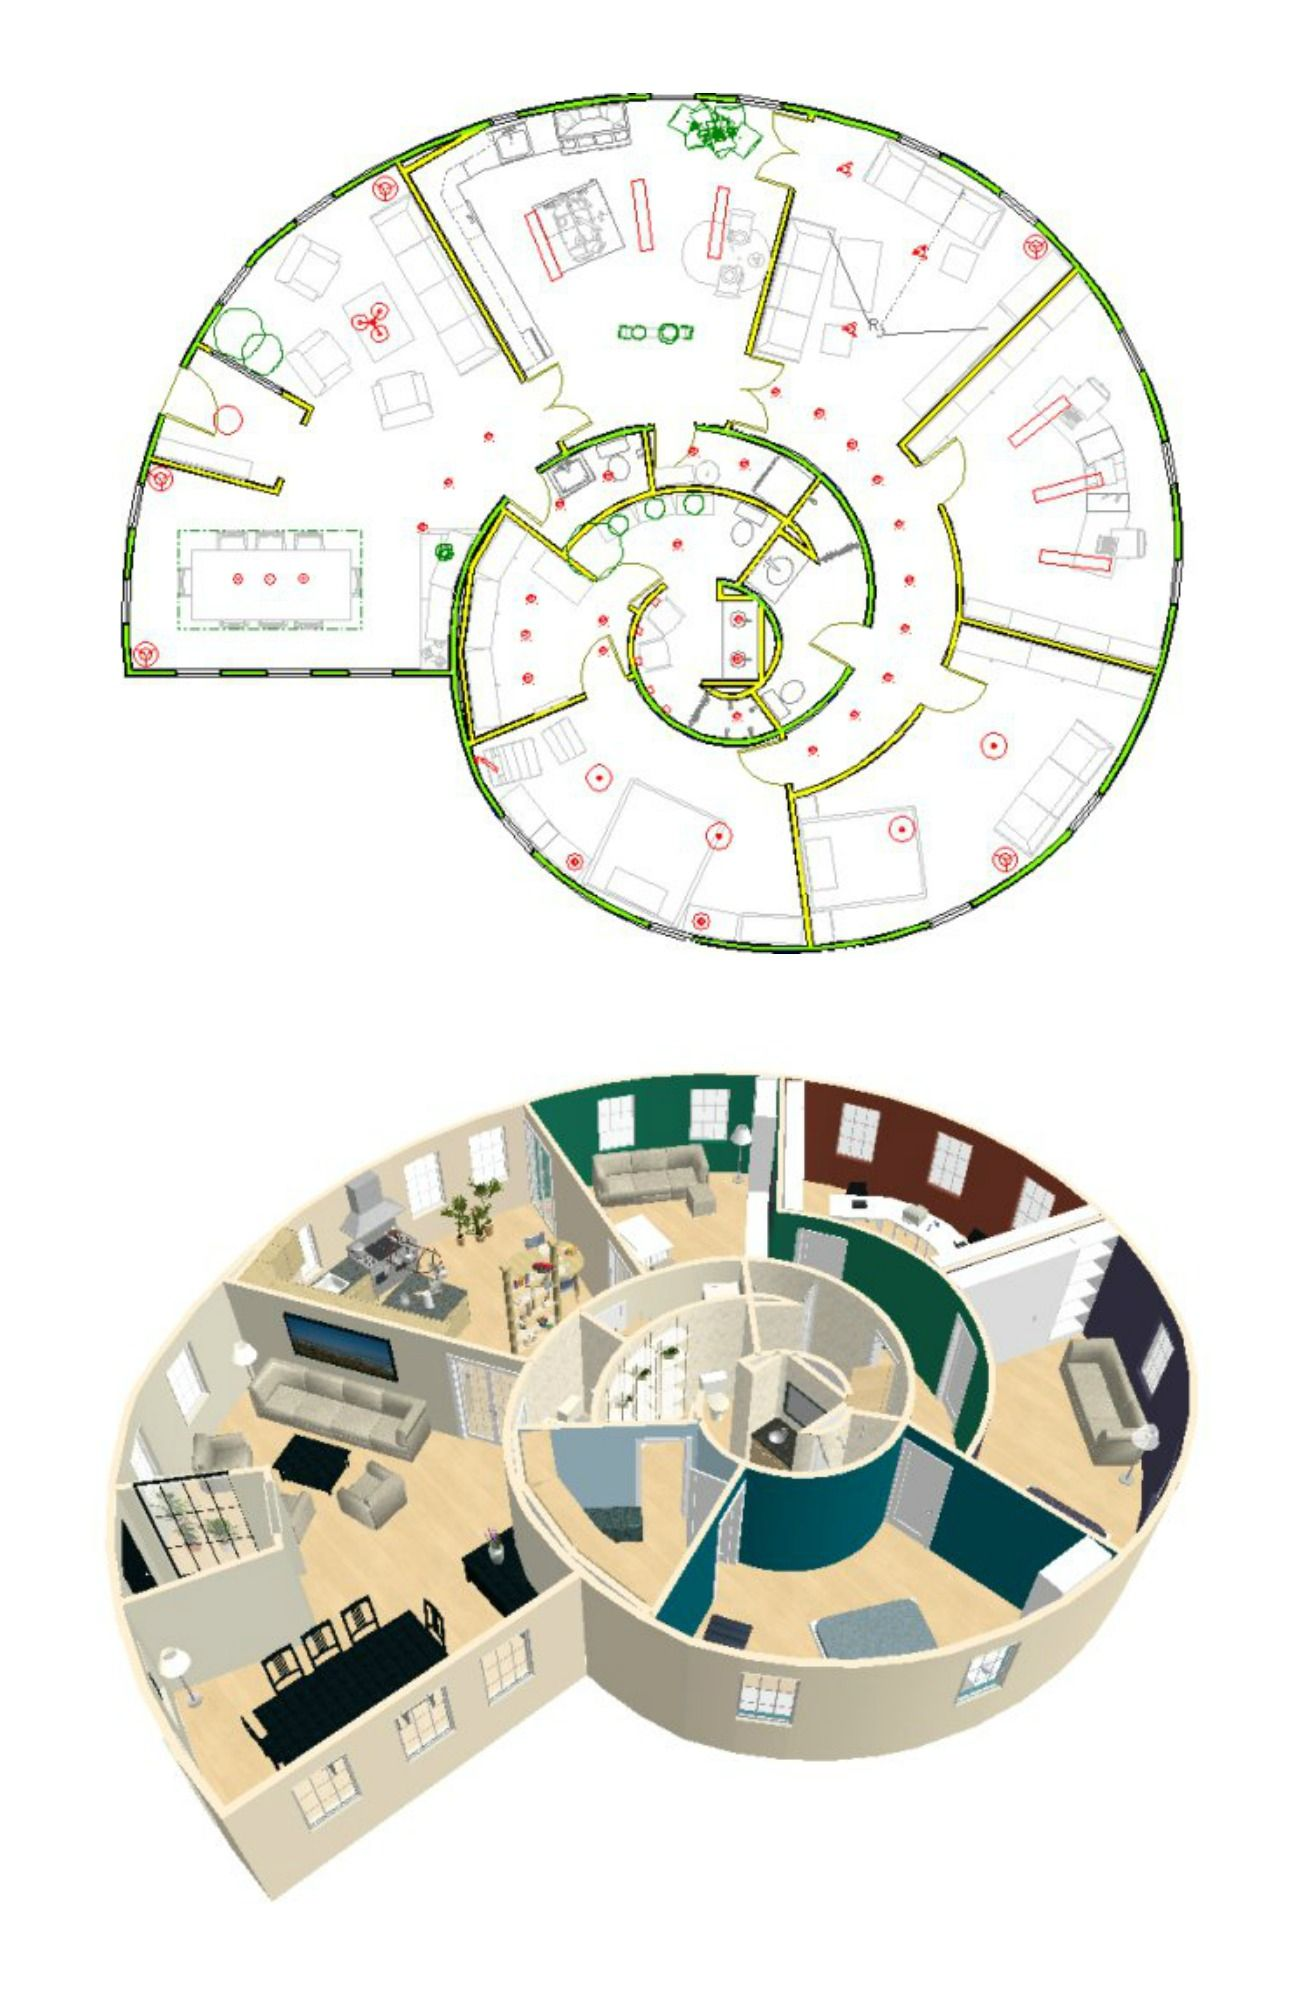 Amazing Snail House Plan Round House Plans Round House Home Design Floor Plans